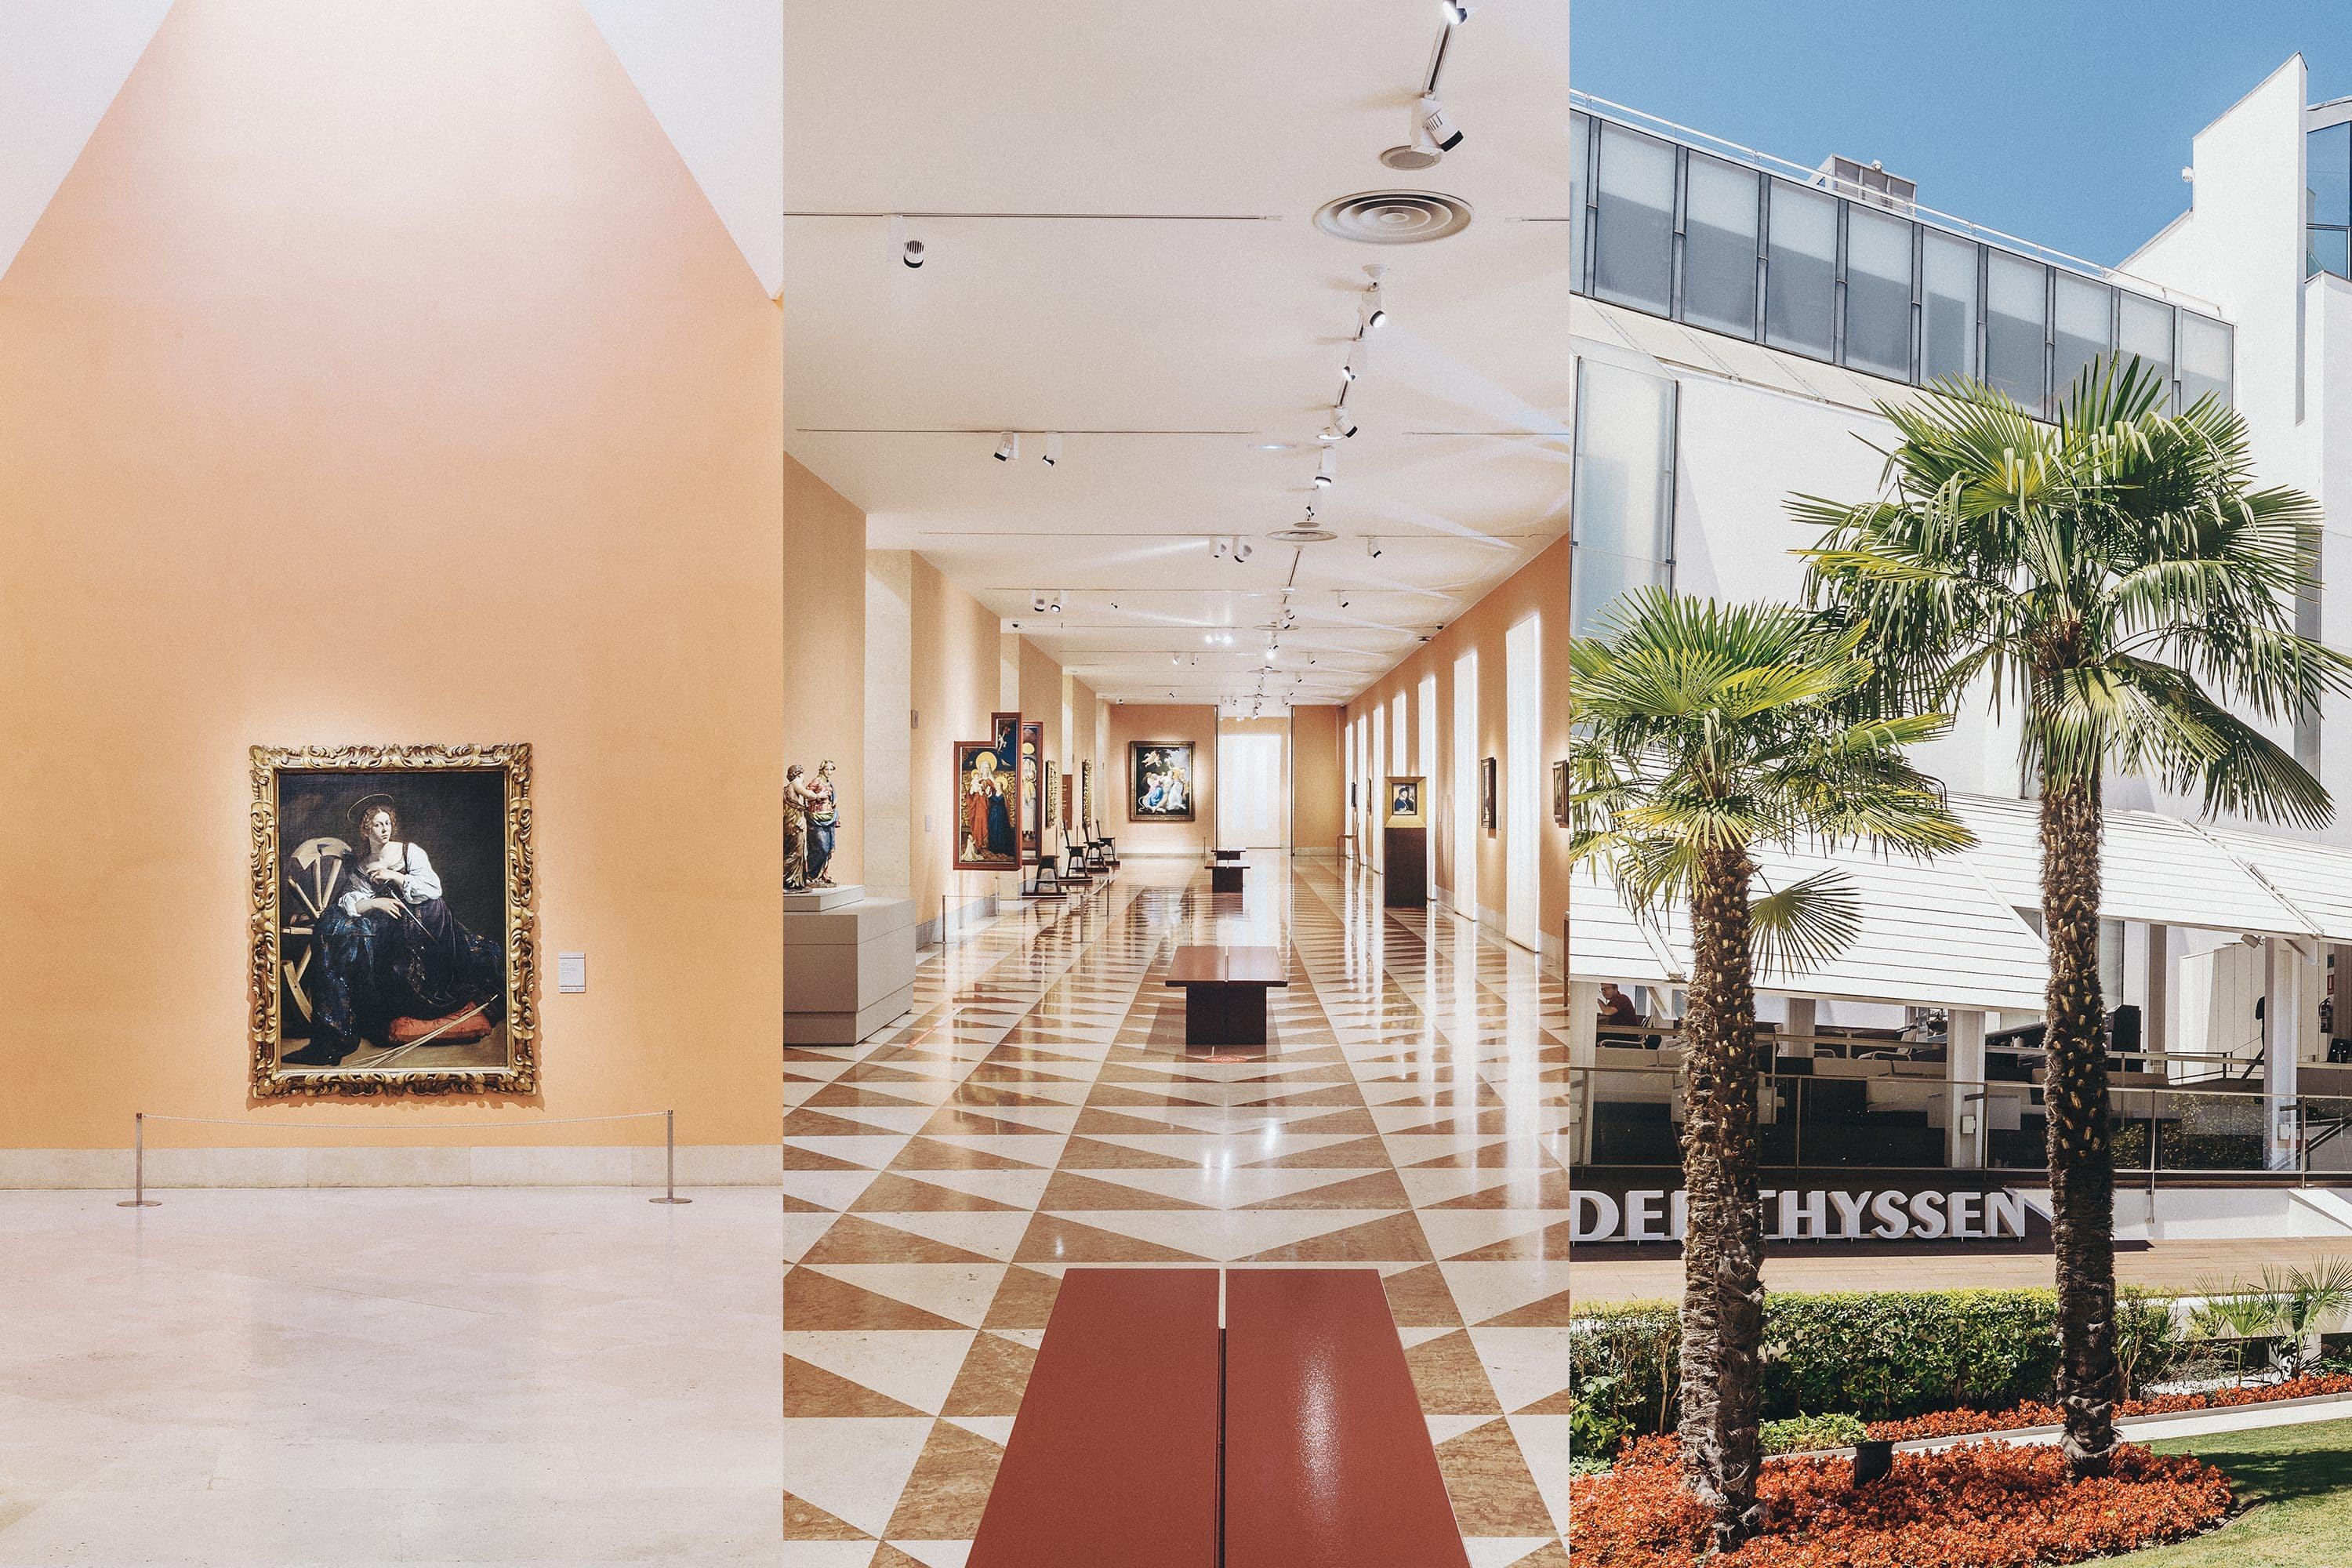 Collage of images showing inside the galleries and exterior of the Museo Nacional Thyssen-Bornemisza